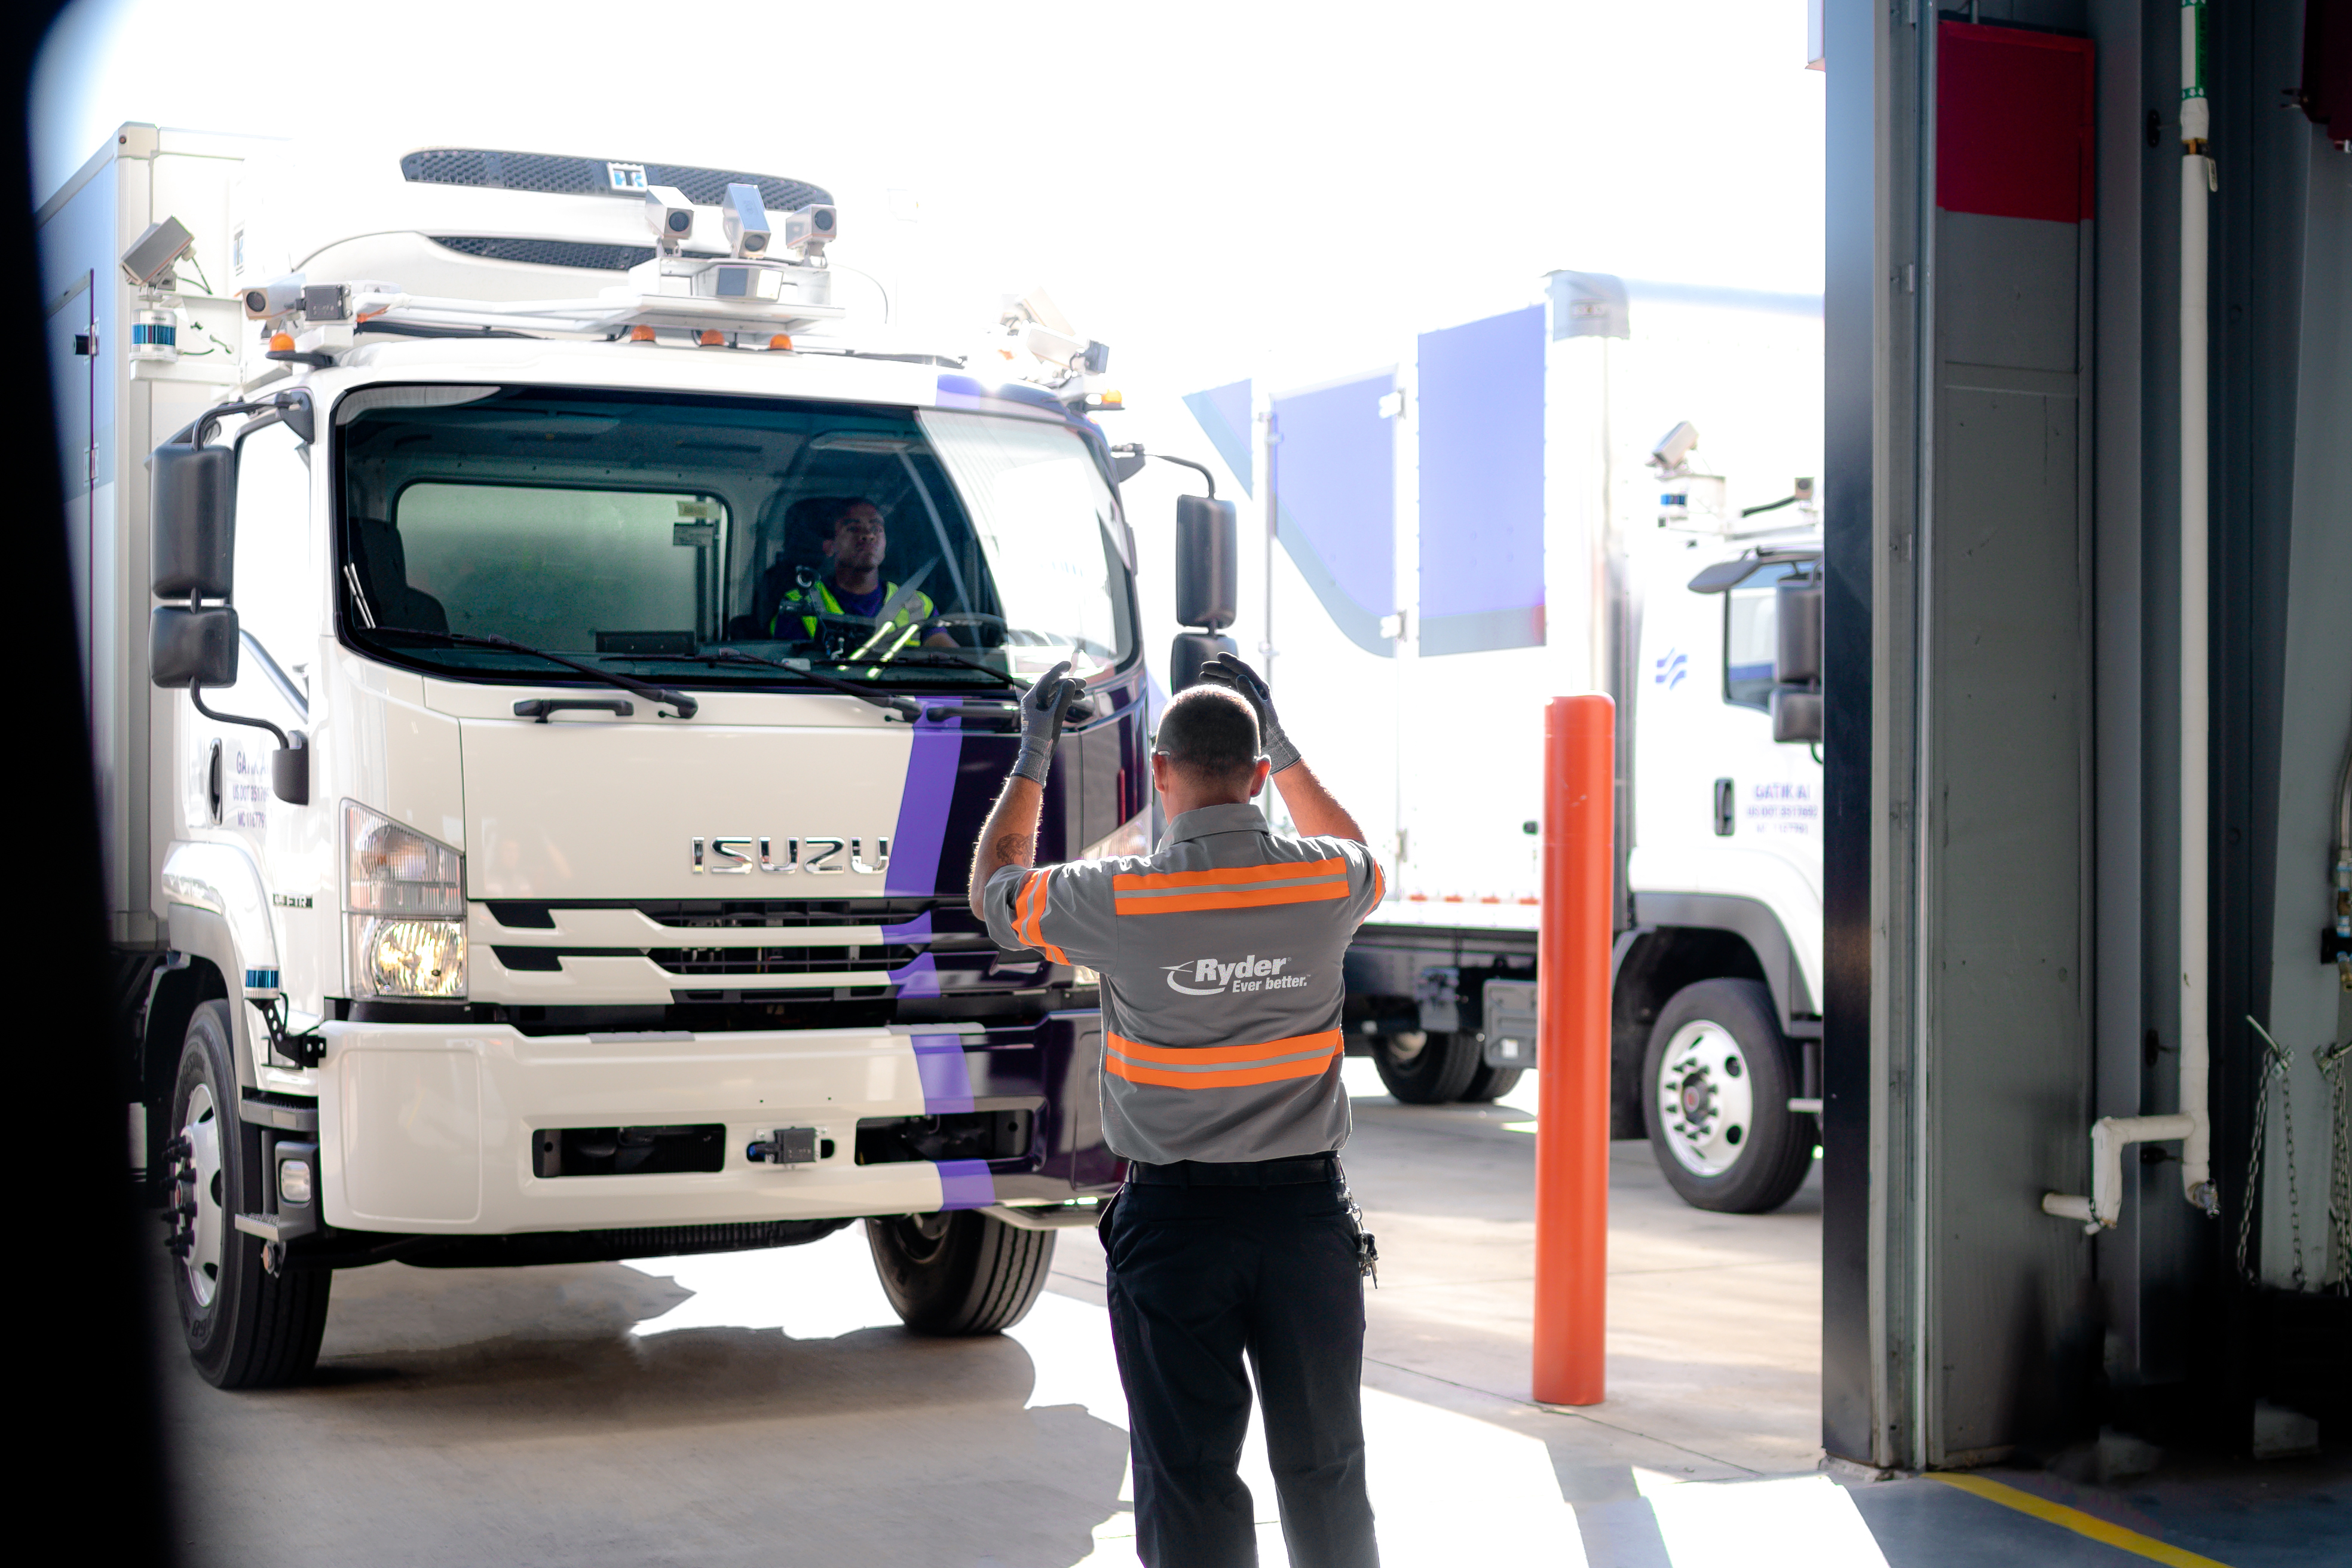 A Ryder technician guides a Gatik autonomous truck with a safety driver behind the wheel into a Ryder maintenance shop near Fort Worth, TX. Ryder has invested in Gatik and will provide leasing and maintenance services for Gatik's fleet of autonomous trucks, with the goal to establish a business-to-business short-haul logistics delivery network across the U.S. and Canada. (Photo: Business Wire)